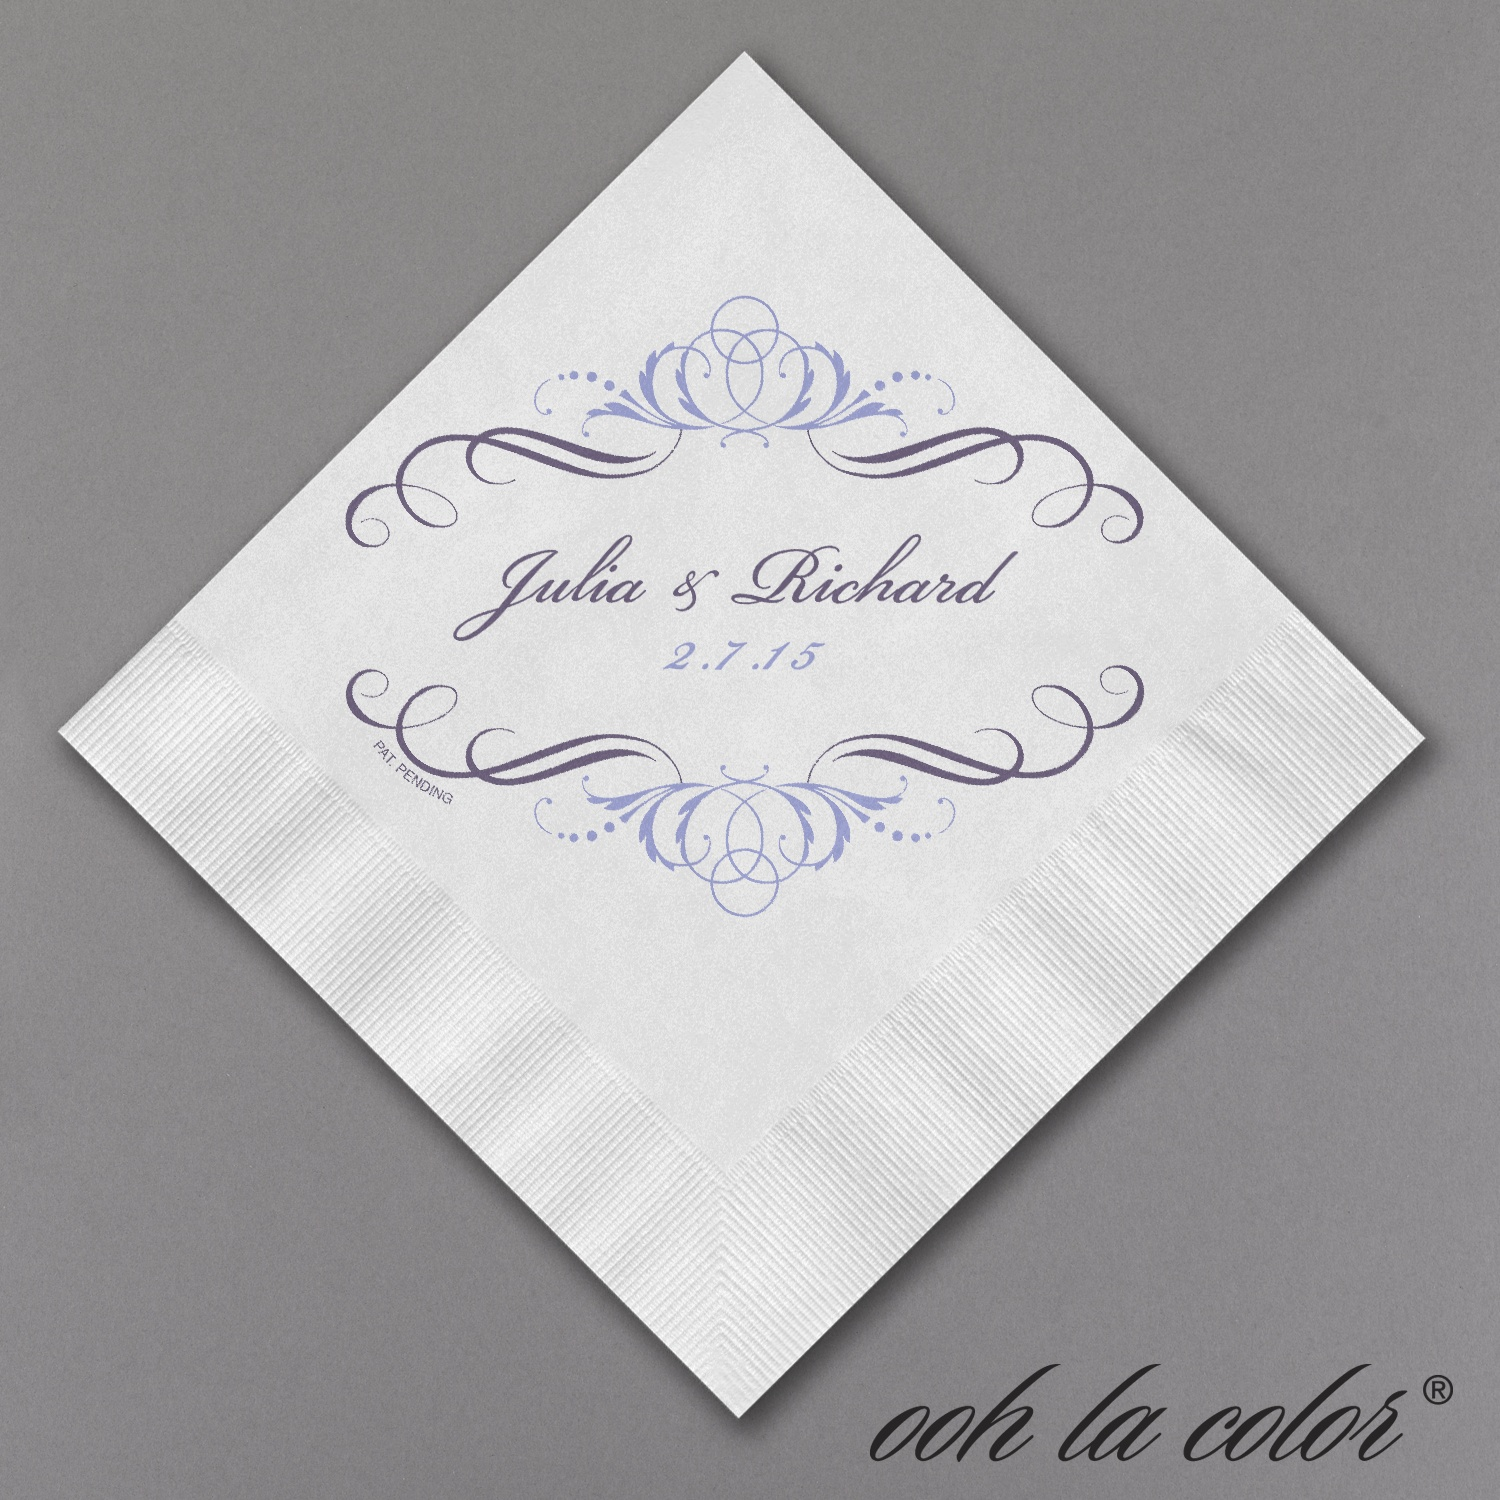 Printed Personalized Items For Weddings - San Antonio Invitation ...